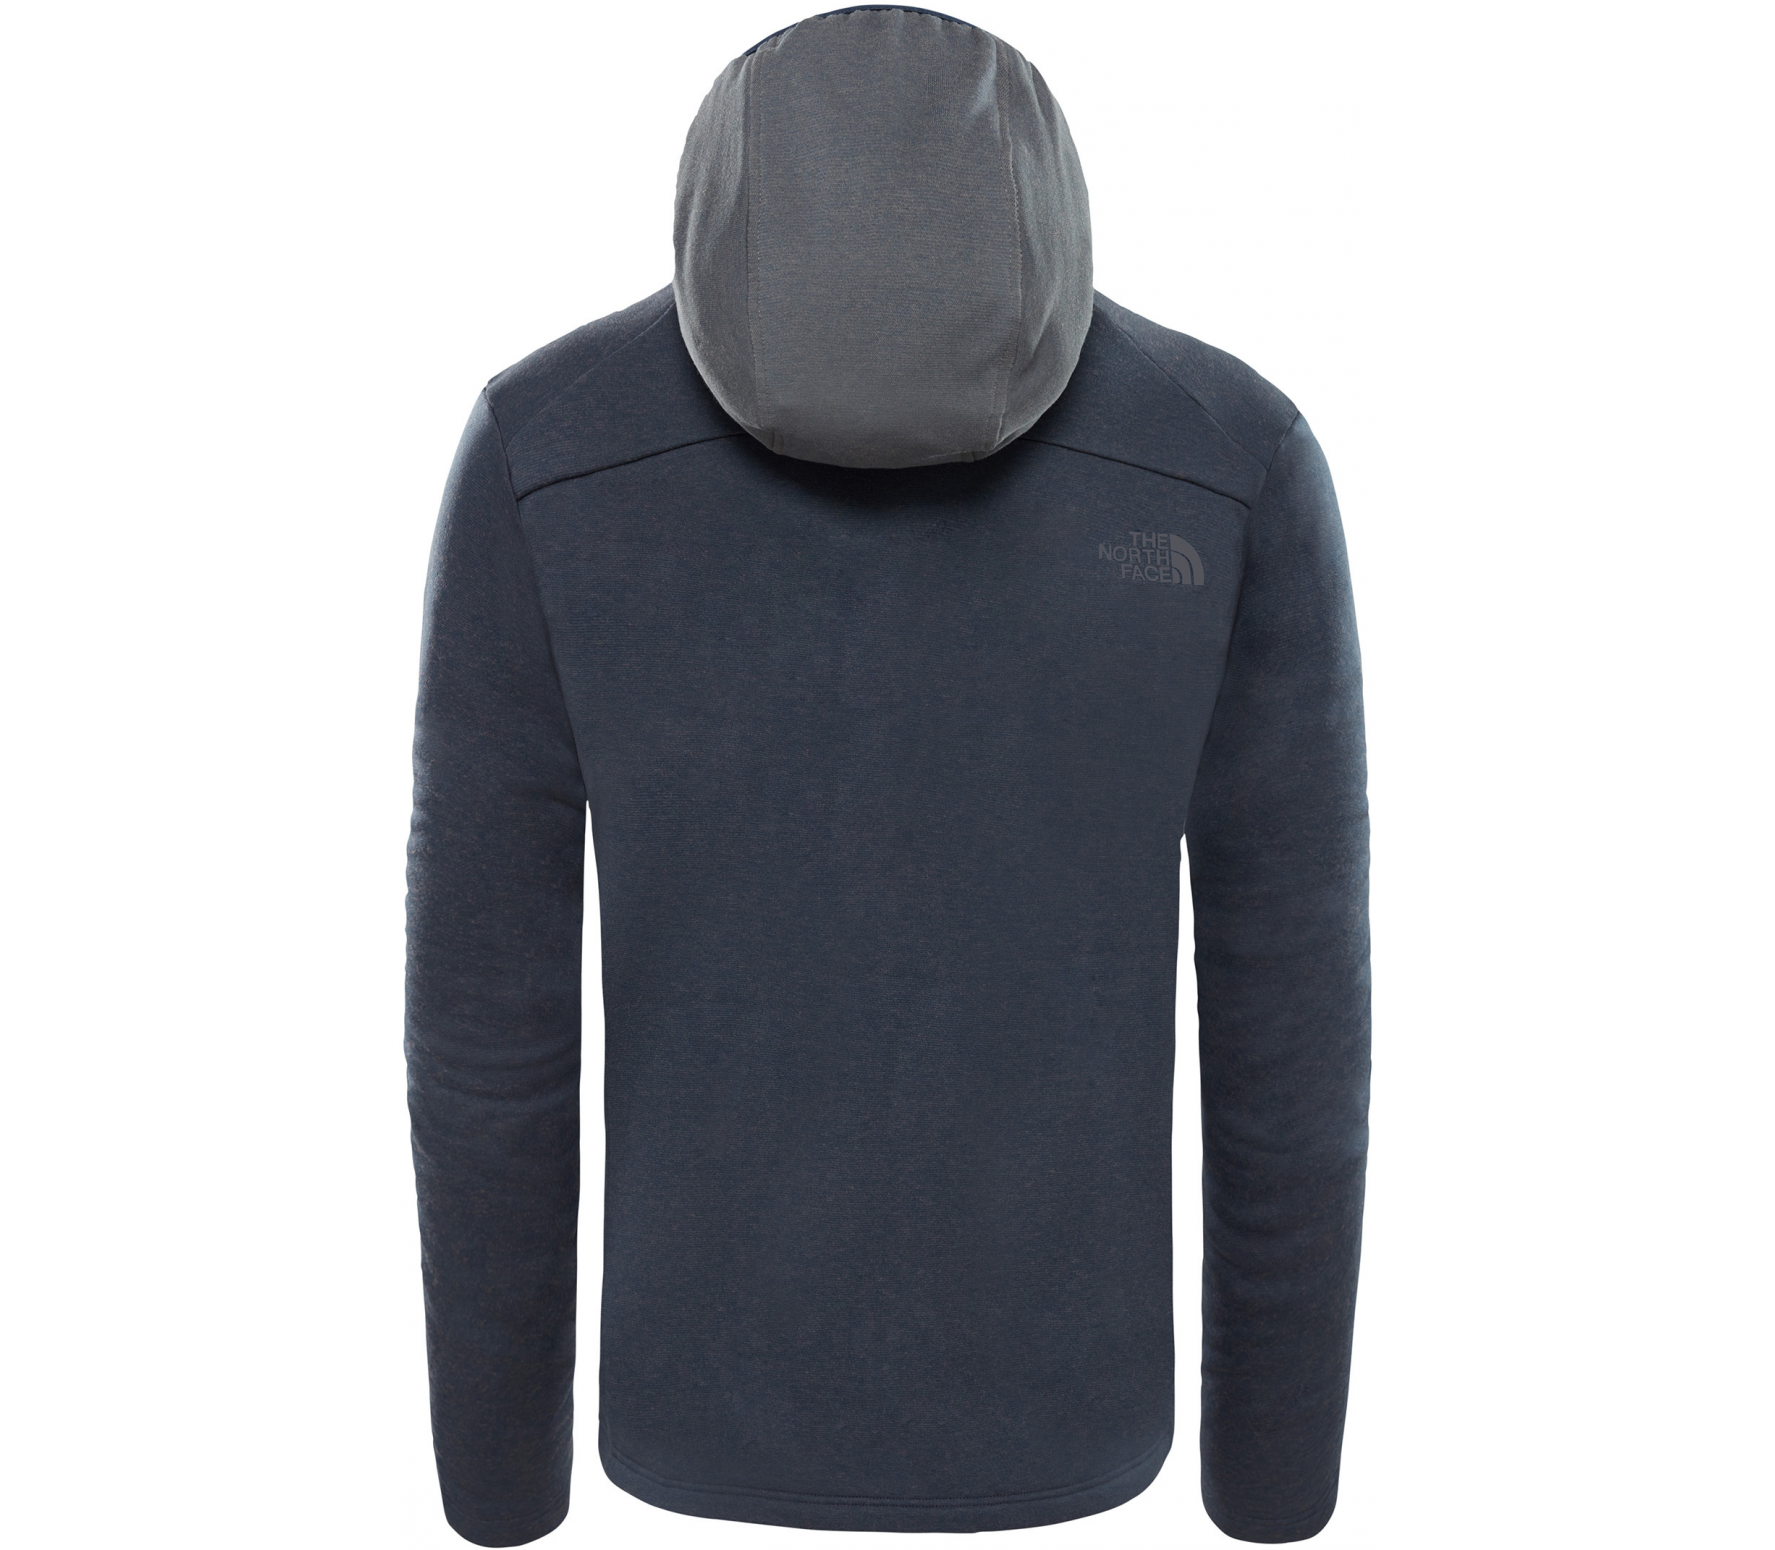 The North Face - Tekari Felpa con cappuccio Uomo giacca in pile (blu ... c388c1be9a7a